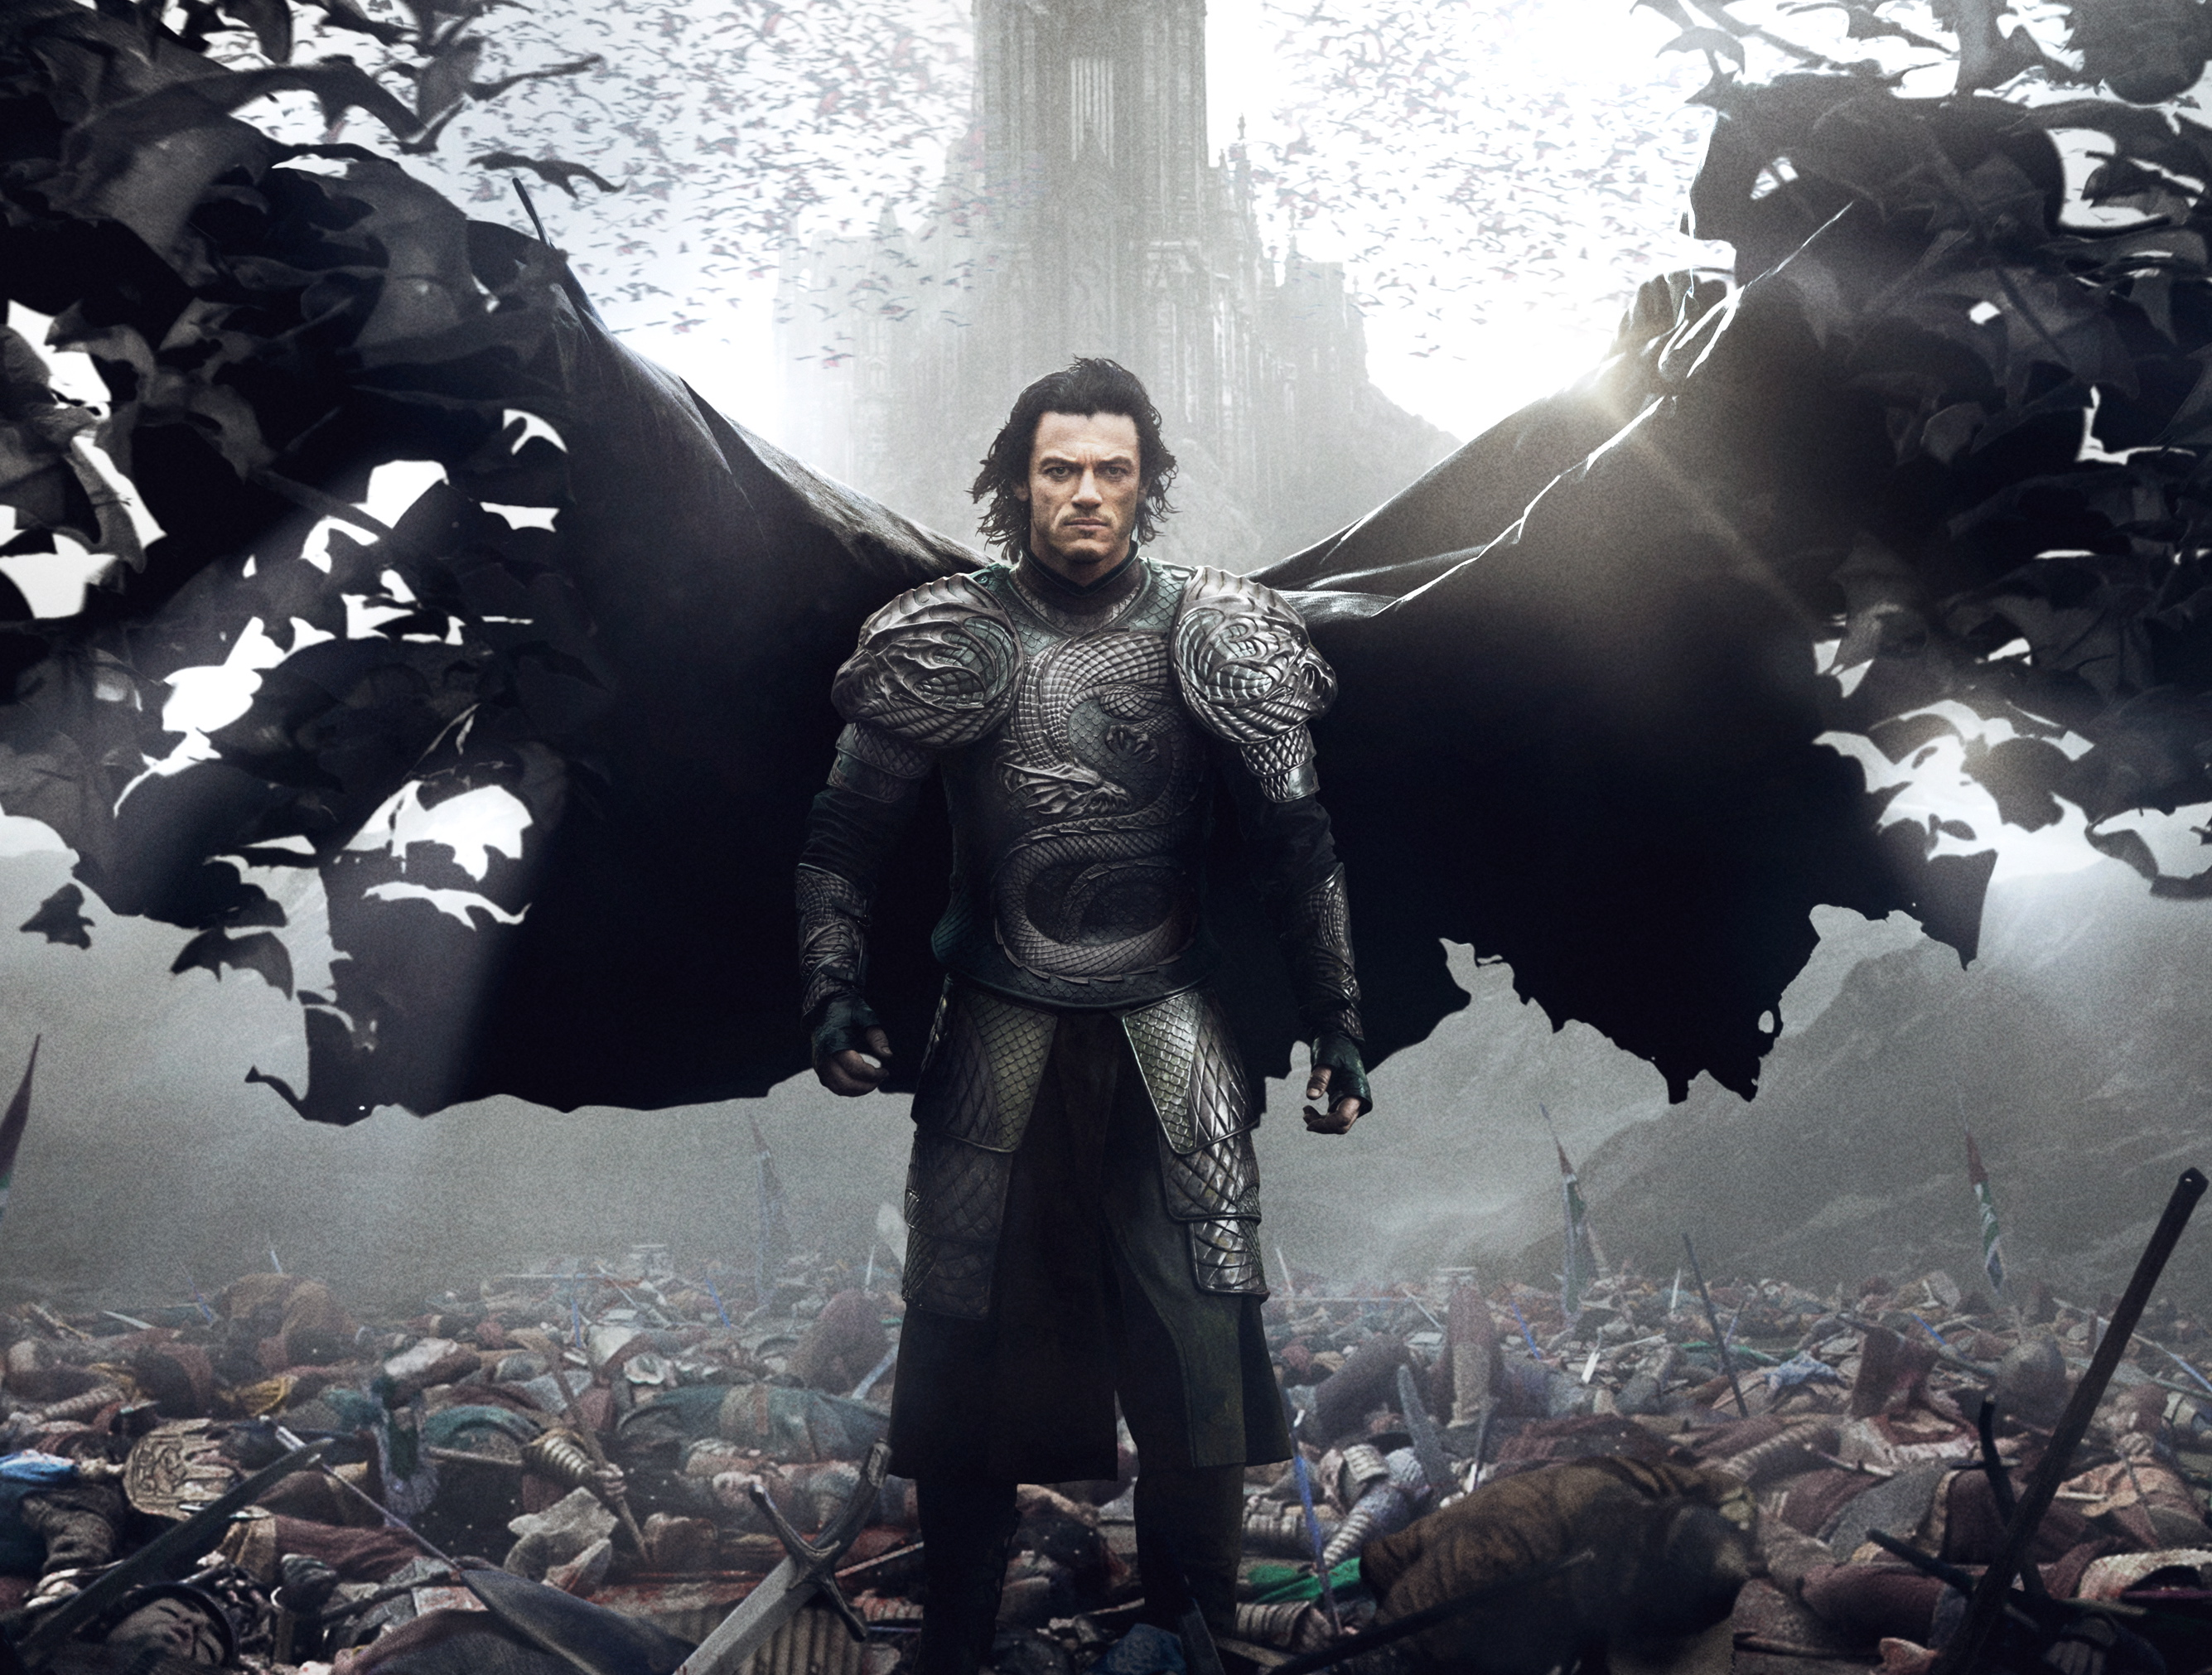 Vlad the Imapler (Luke Evans) standing over the vanquished. photo: Universal Studios